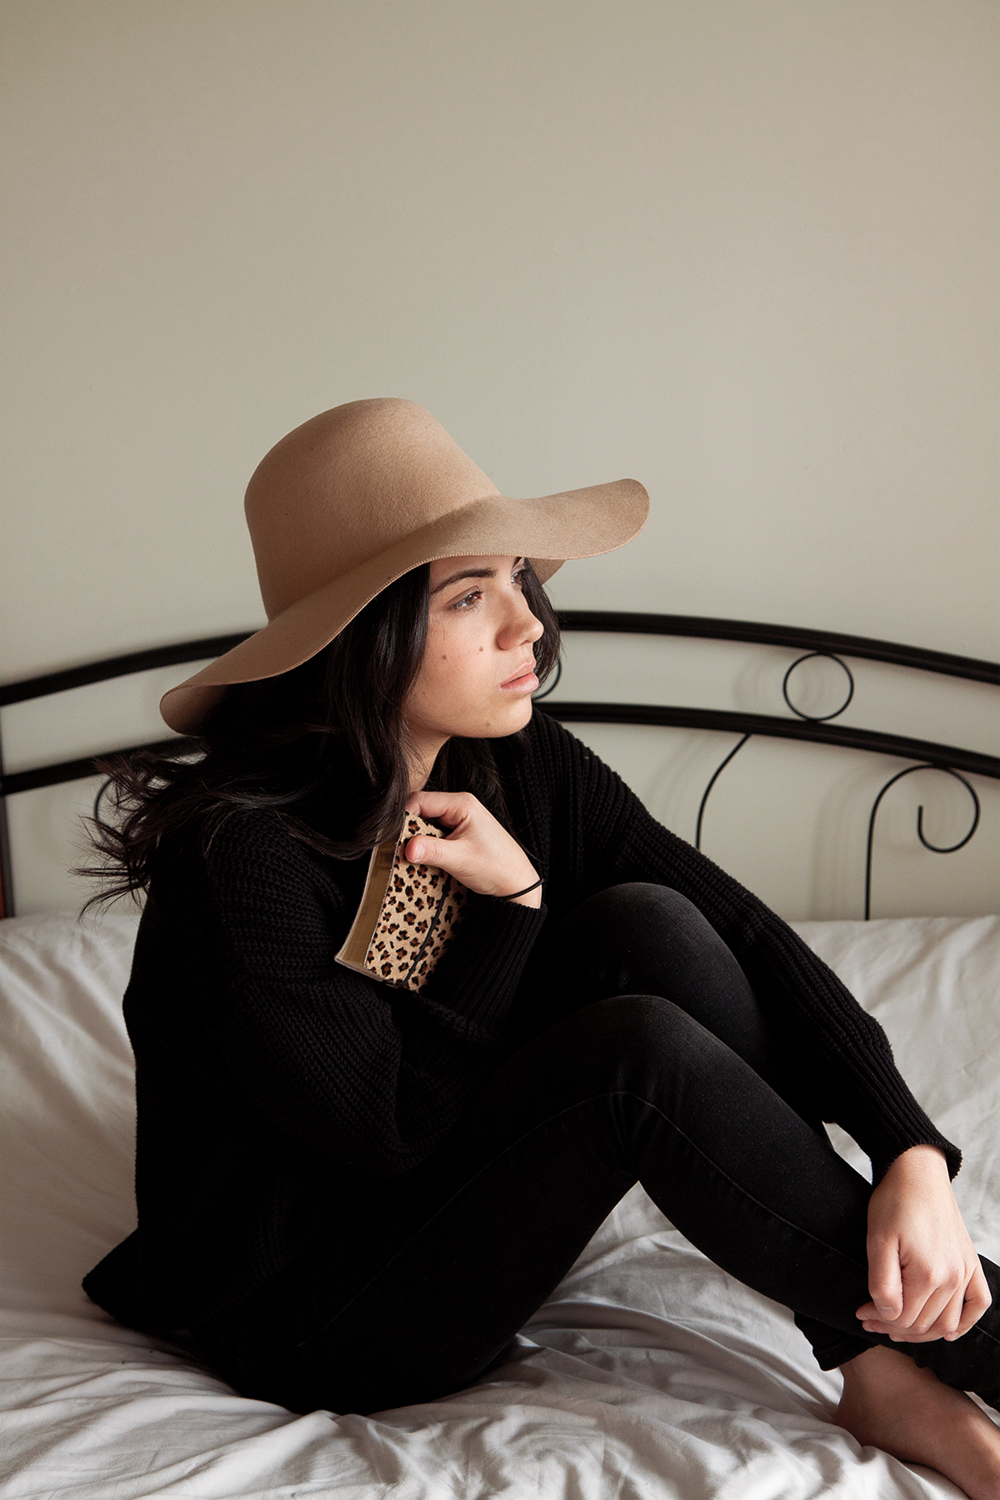 Hat and sweater from American Appareil//Agenda from Zara home//Jeans from Zara